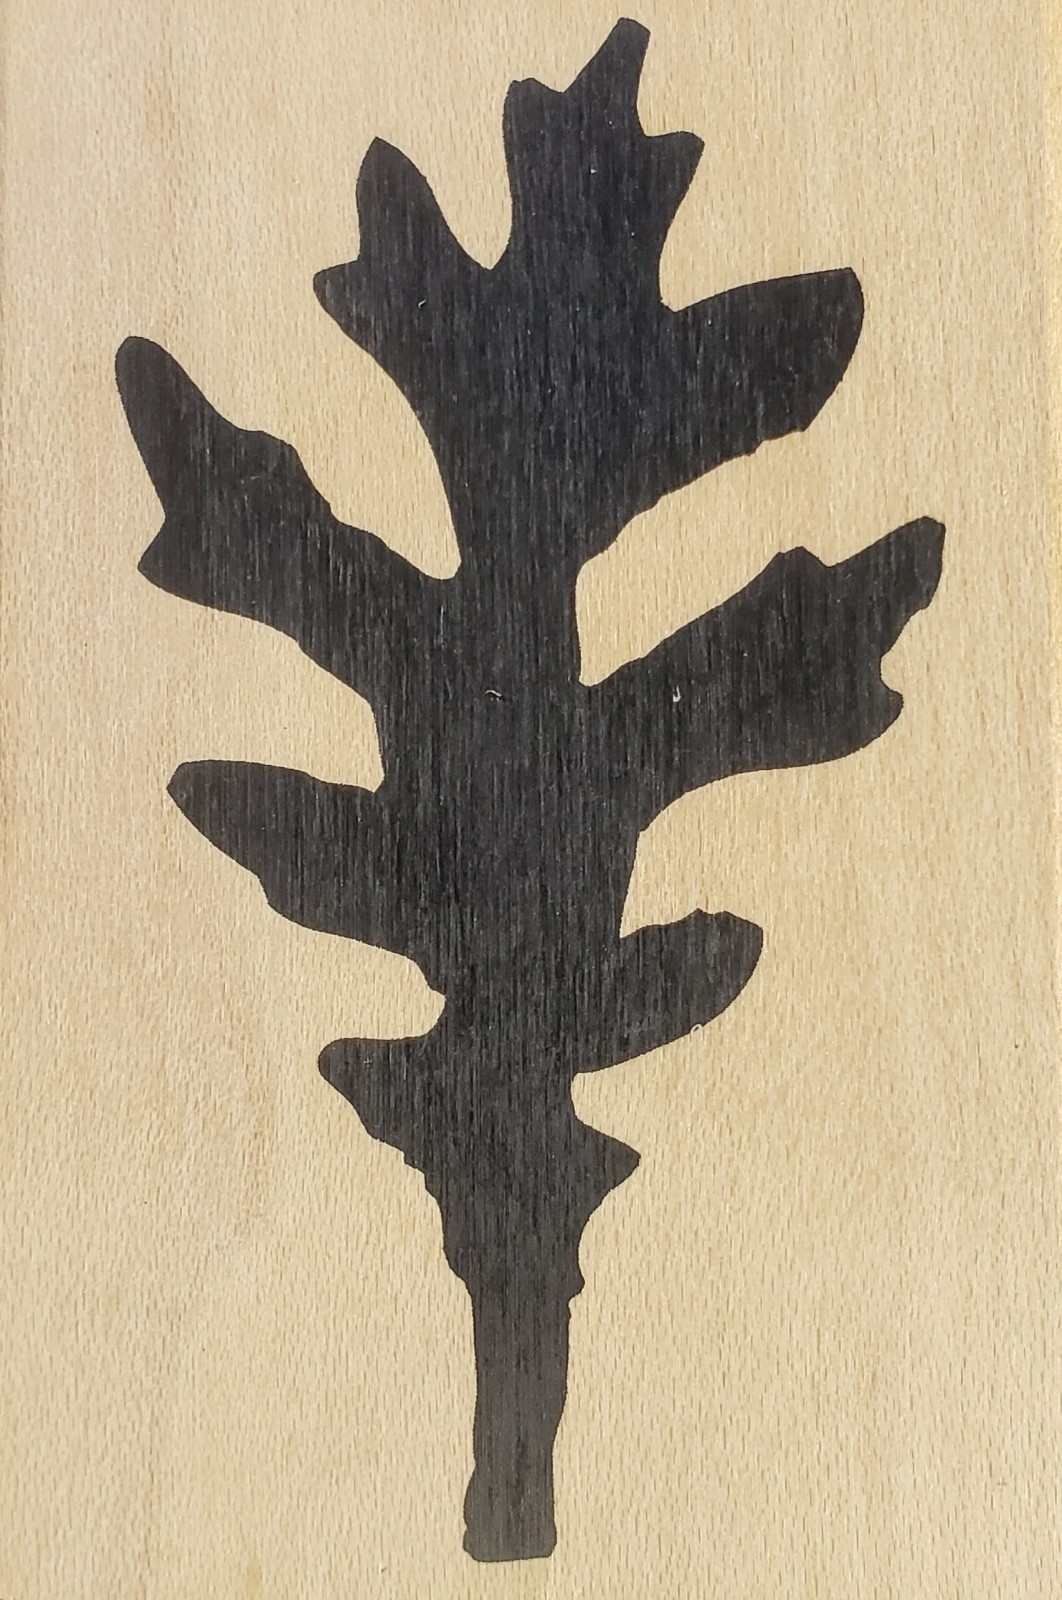 Stampers Anonymous Leaf Silhouette 2 K5-1756